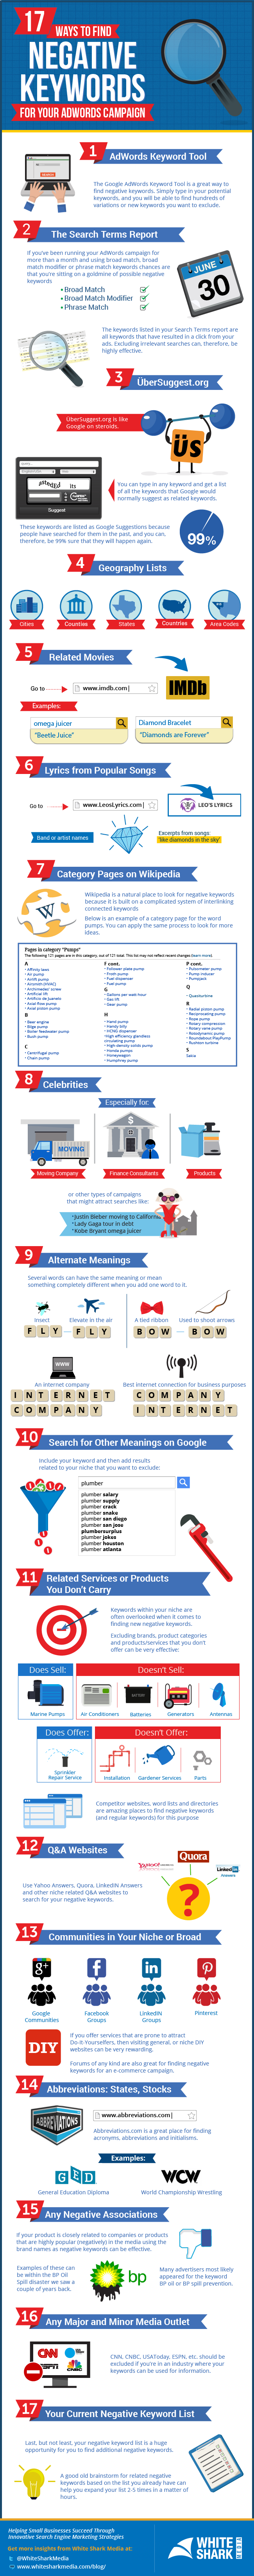 17 Ways to Find Negative Keywords Infographic